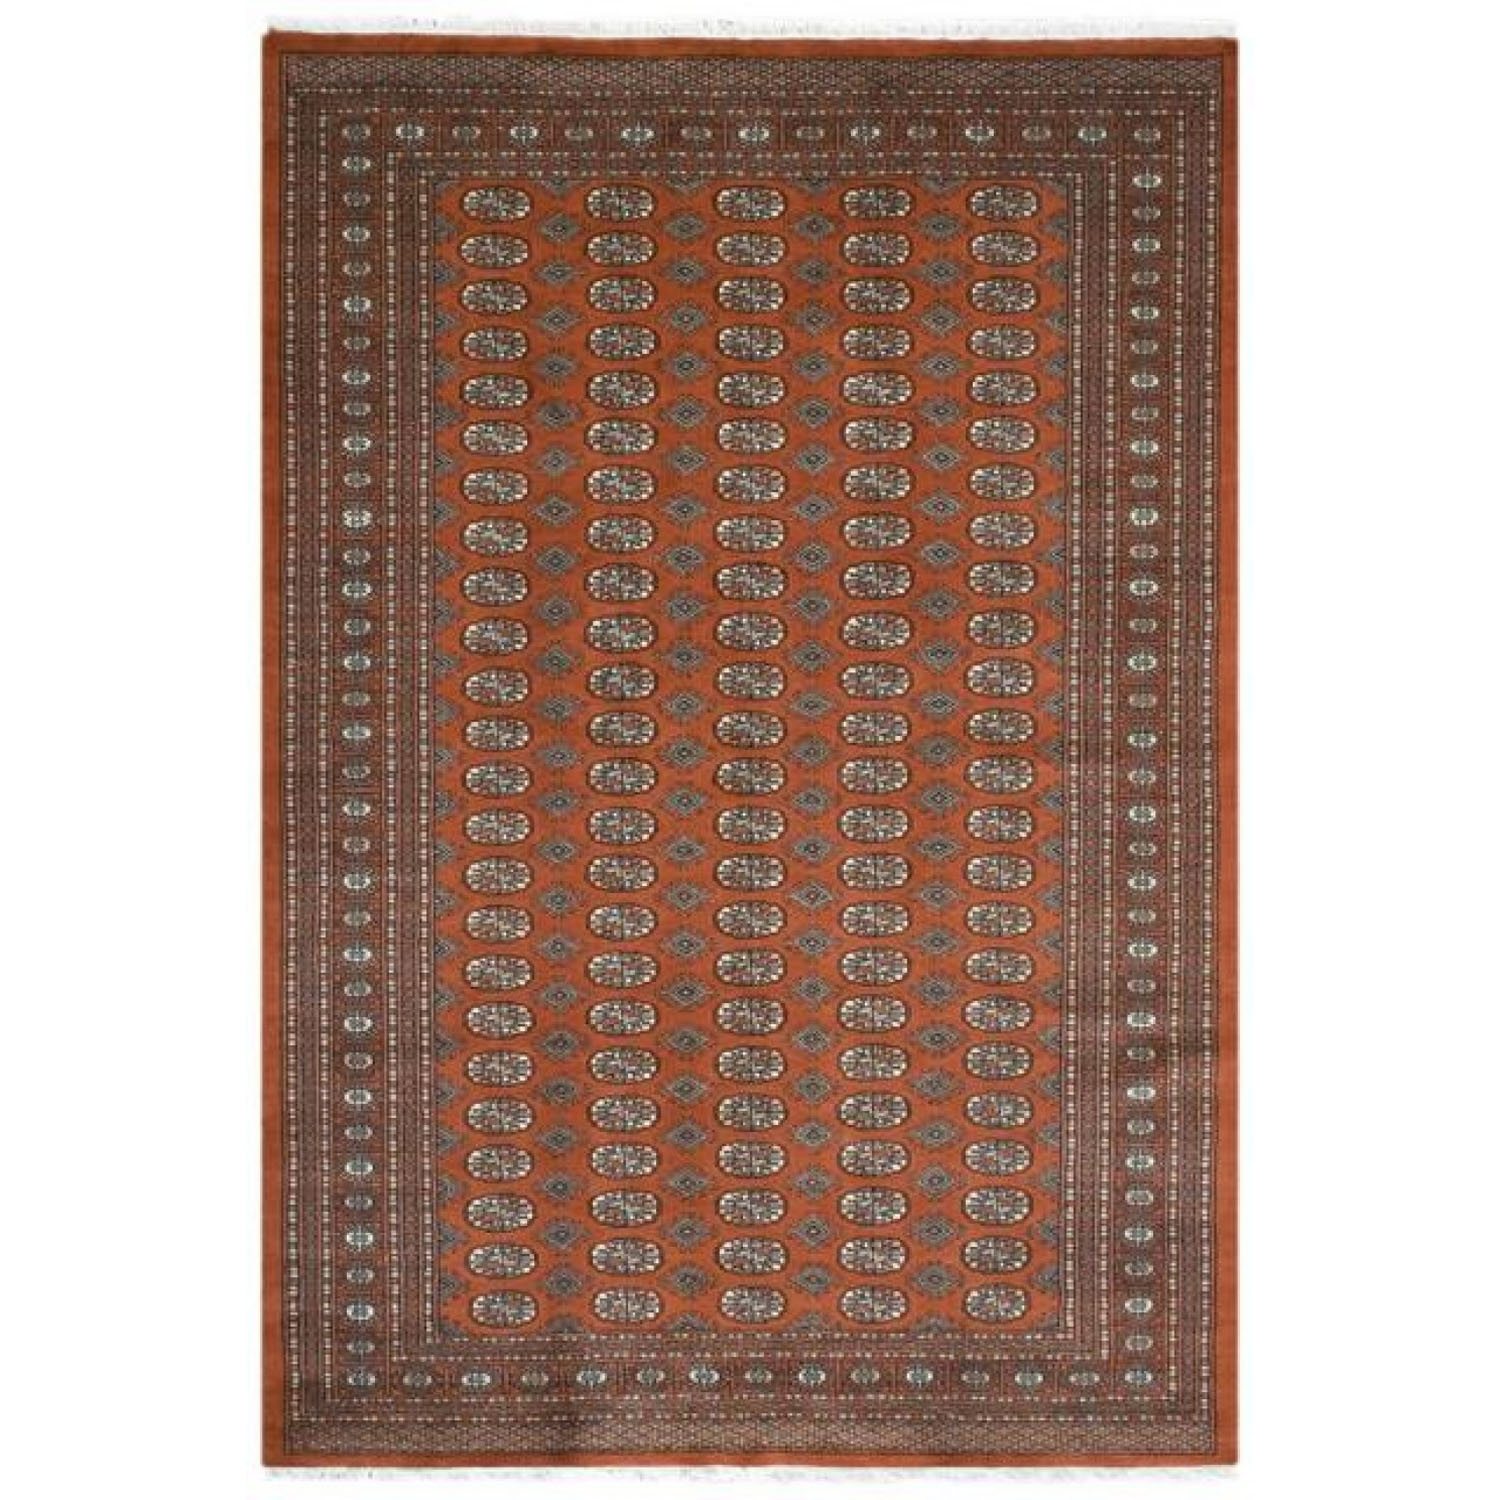 Image of Frith Rugs Bok055 Bokhara Design Rug, 183cm X 122cm, Rust